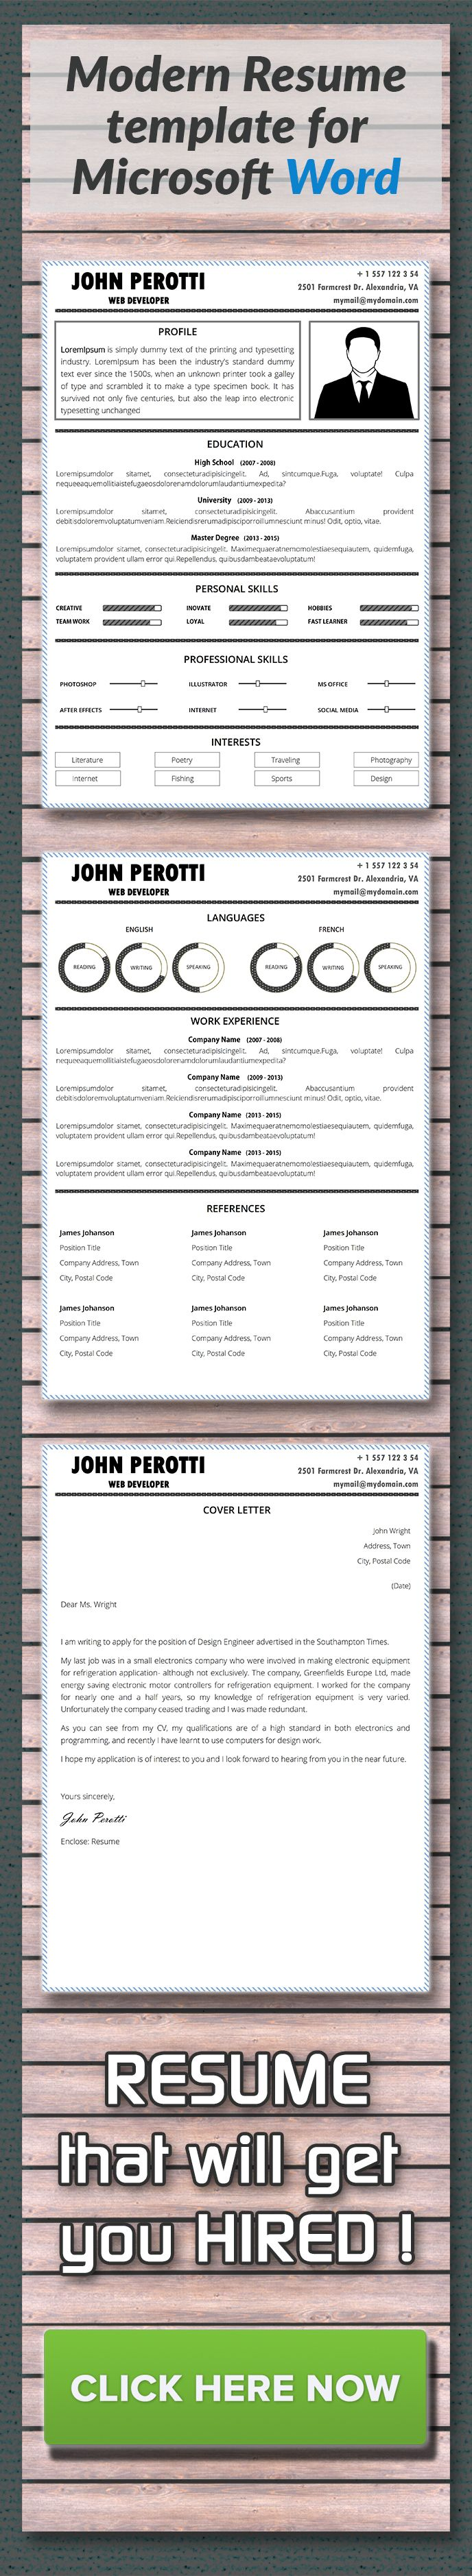 Word Cv Templates 2007%0A Modern Resume Template Employers like to read